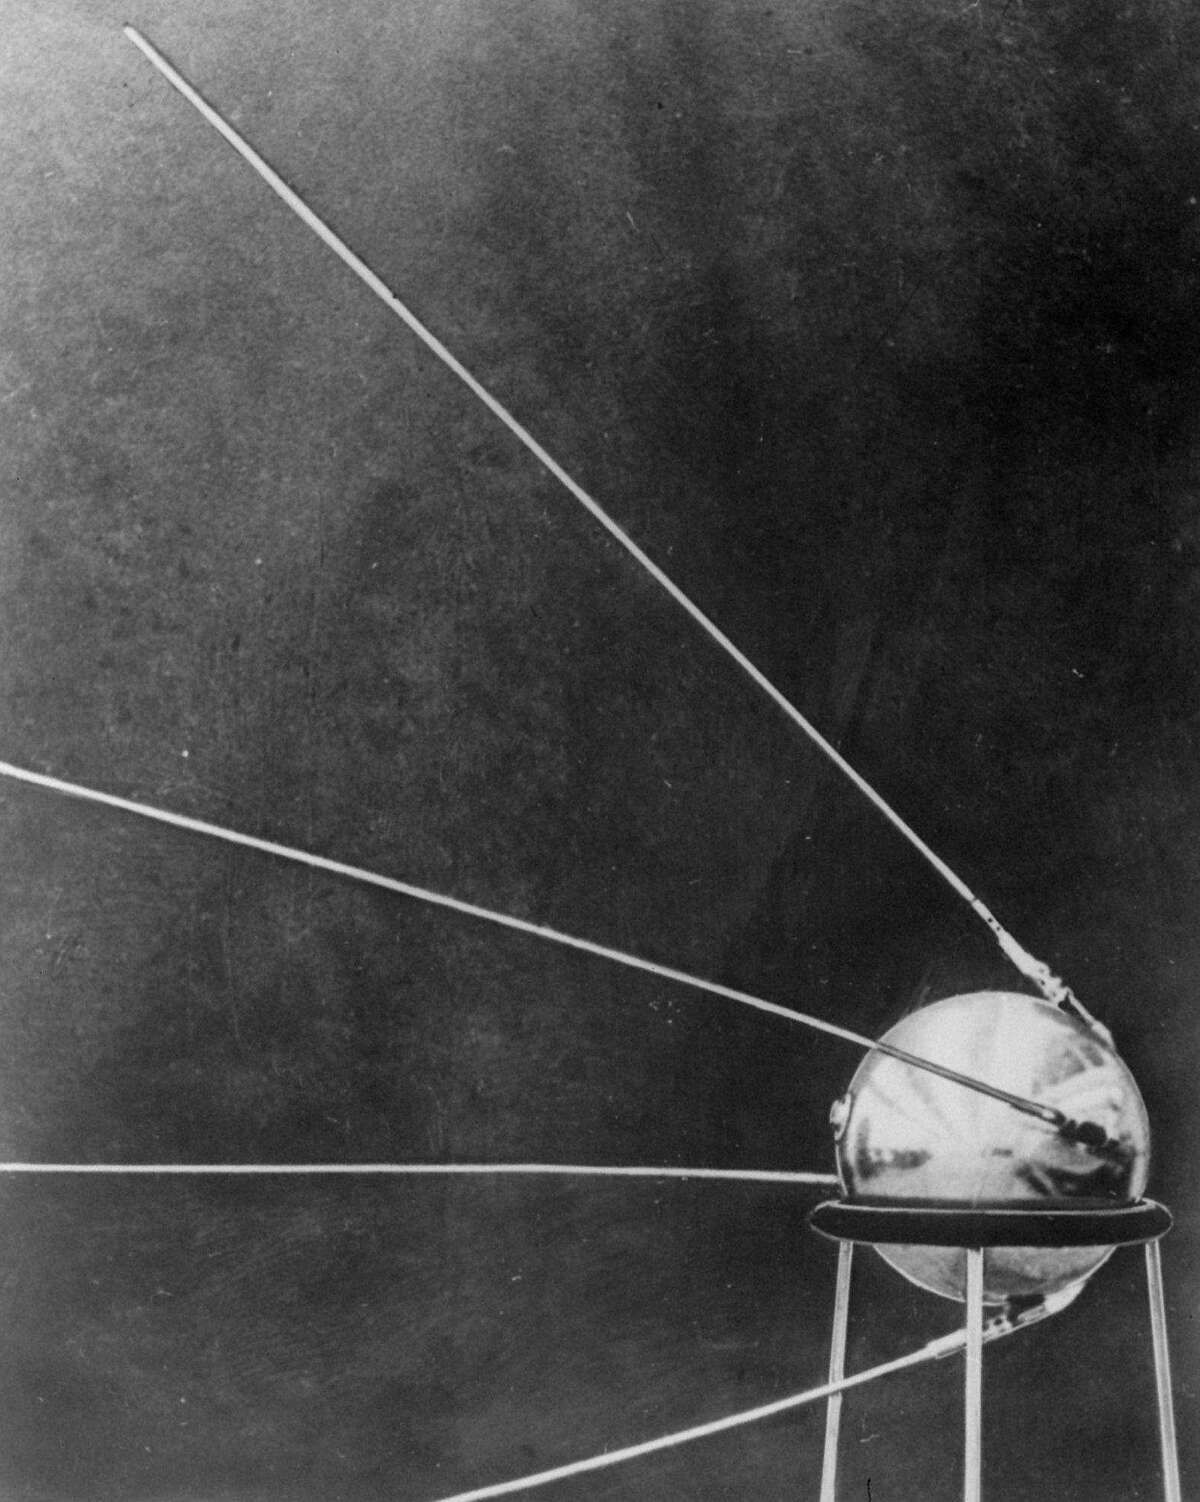 This first official picture of the Soviet satellite Sputnik I was issued in Moscow October 9, 1957, showing the satellite with its four antennas resting on a pedestal. Working in obsessive secrecy, the Soviets propelled the Sputnik satellite into space on Oct. 4, 1957, making it the first man-made object to reach the limits of the earth's gravity. It also triggered the Space Age and changes to everyday life that people now take for granted.